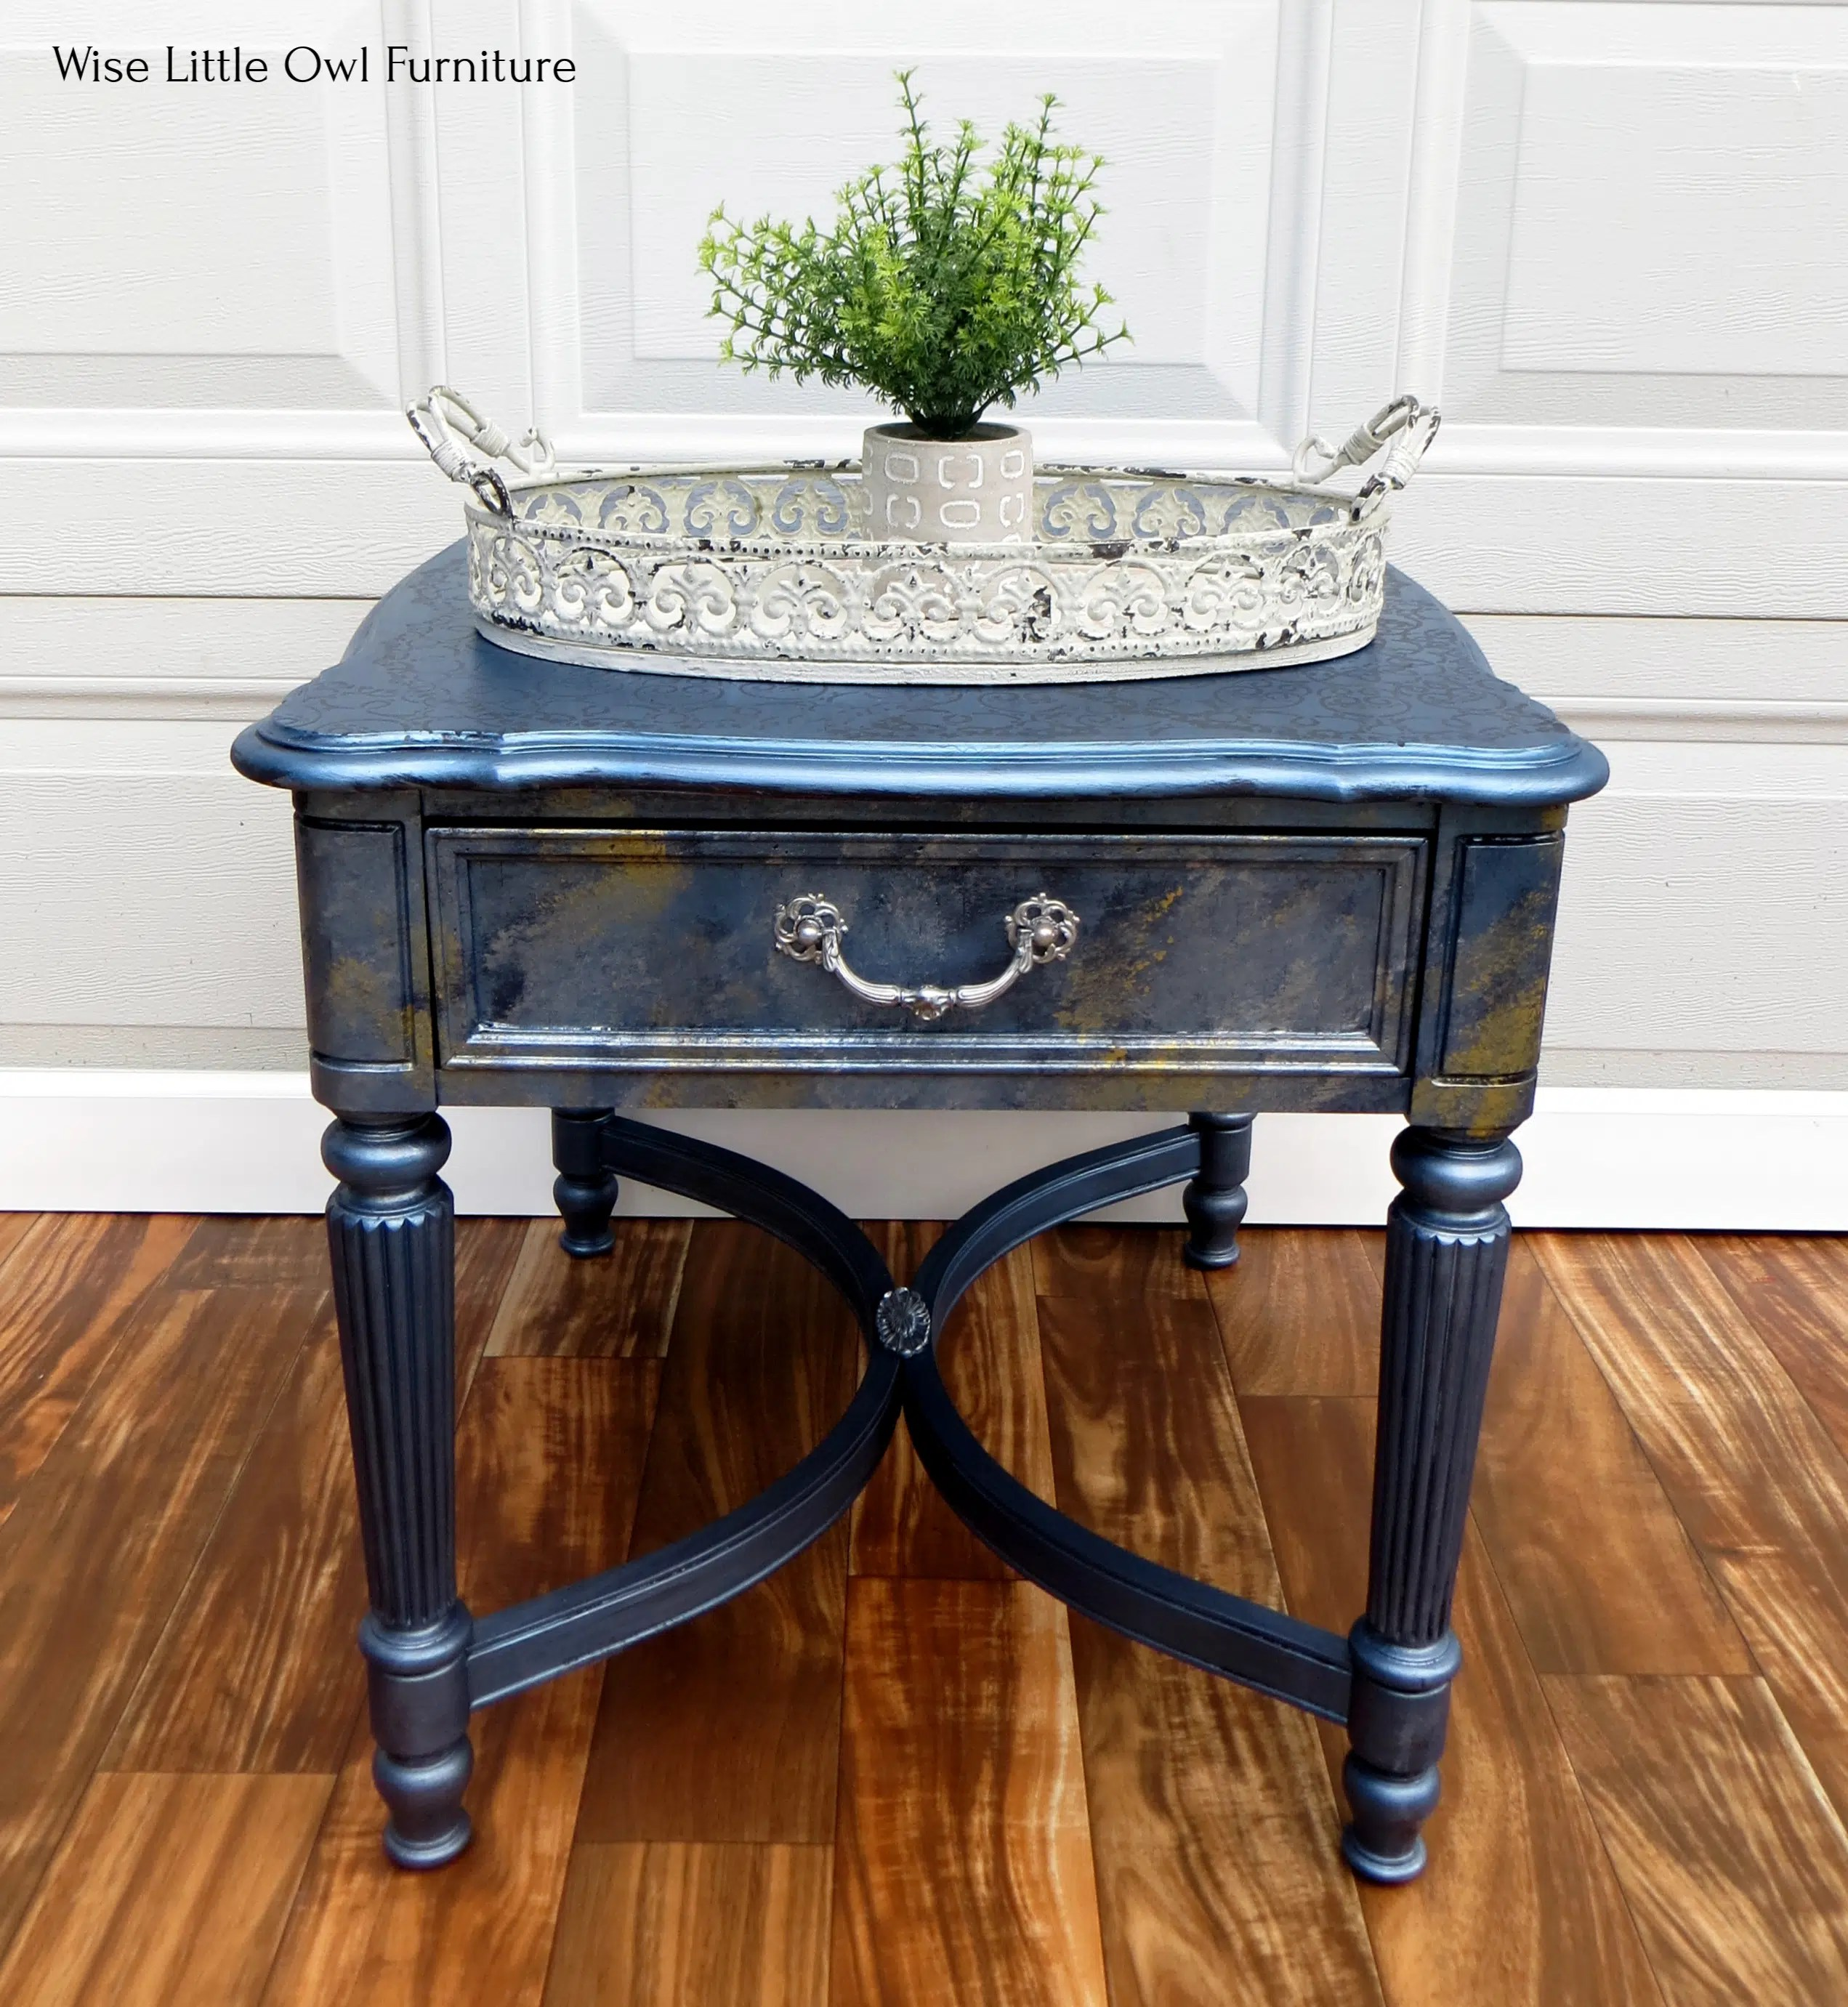 How To Paint Faux Marble Wise Little Owl Furniture